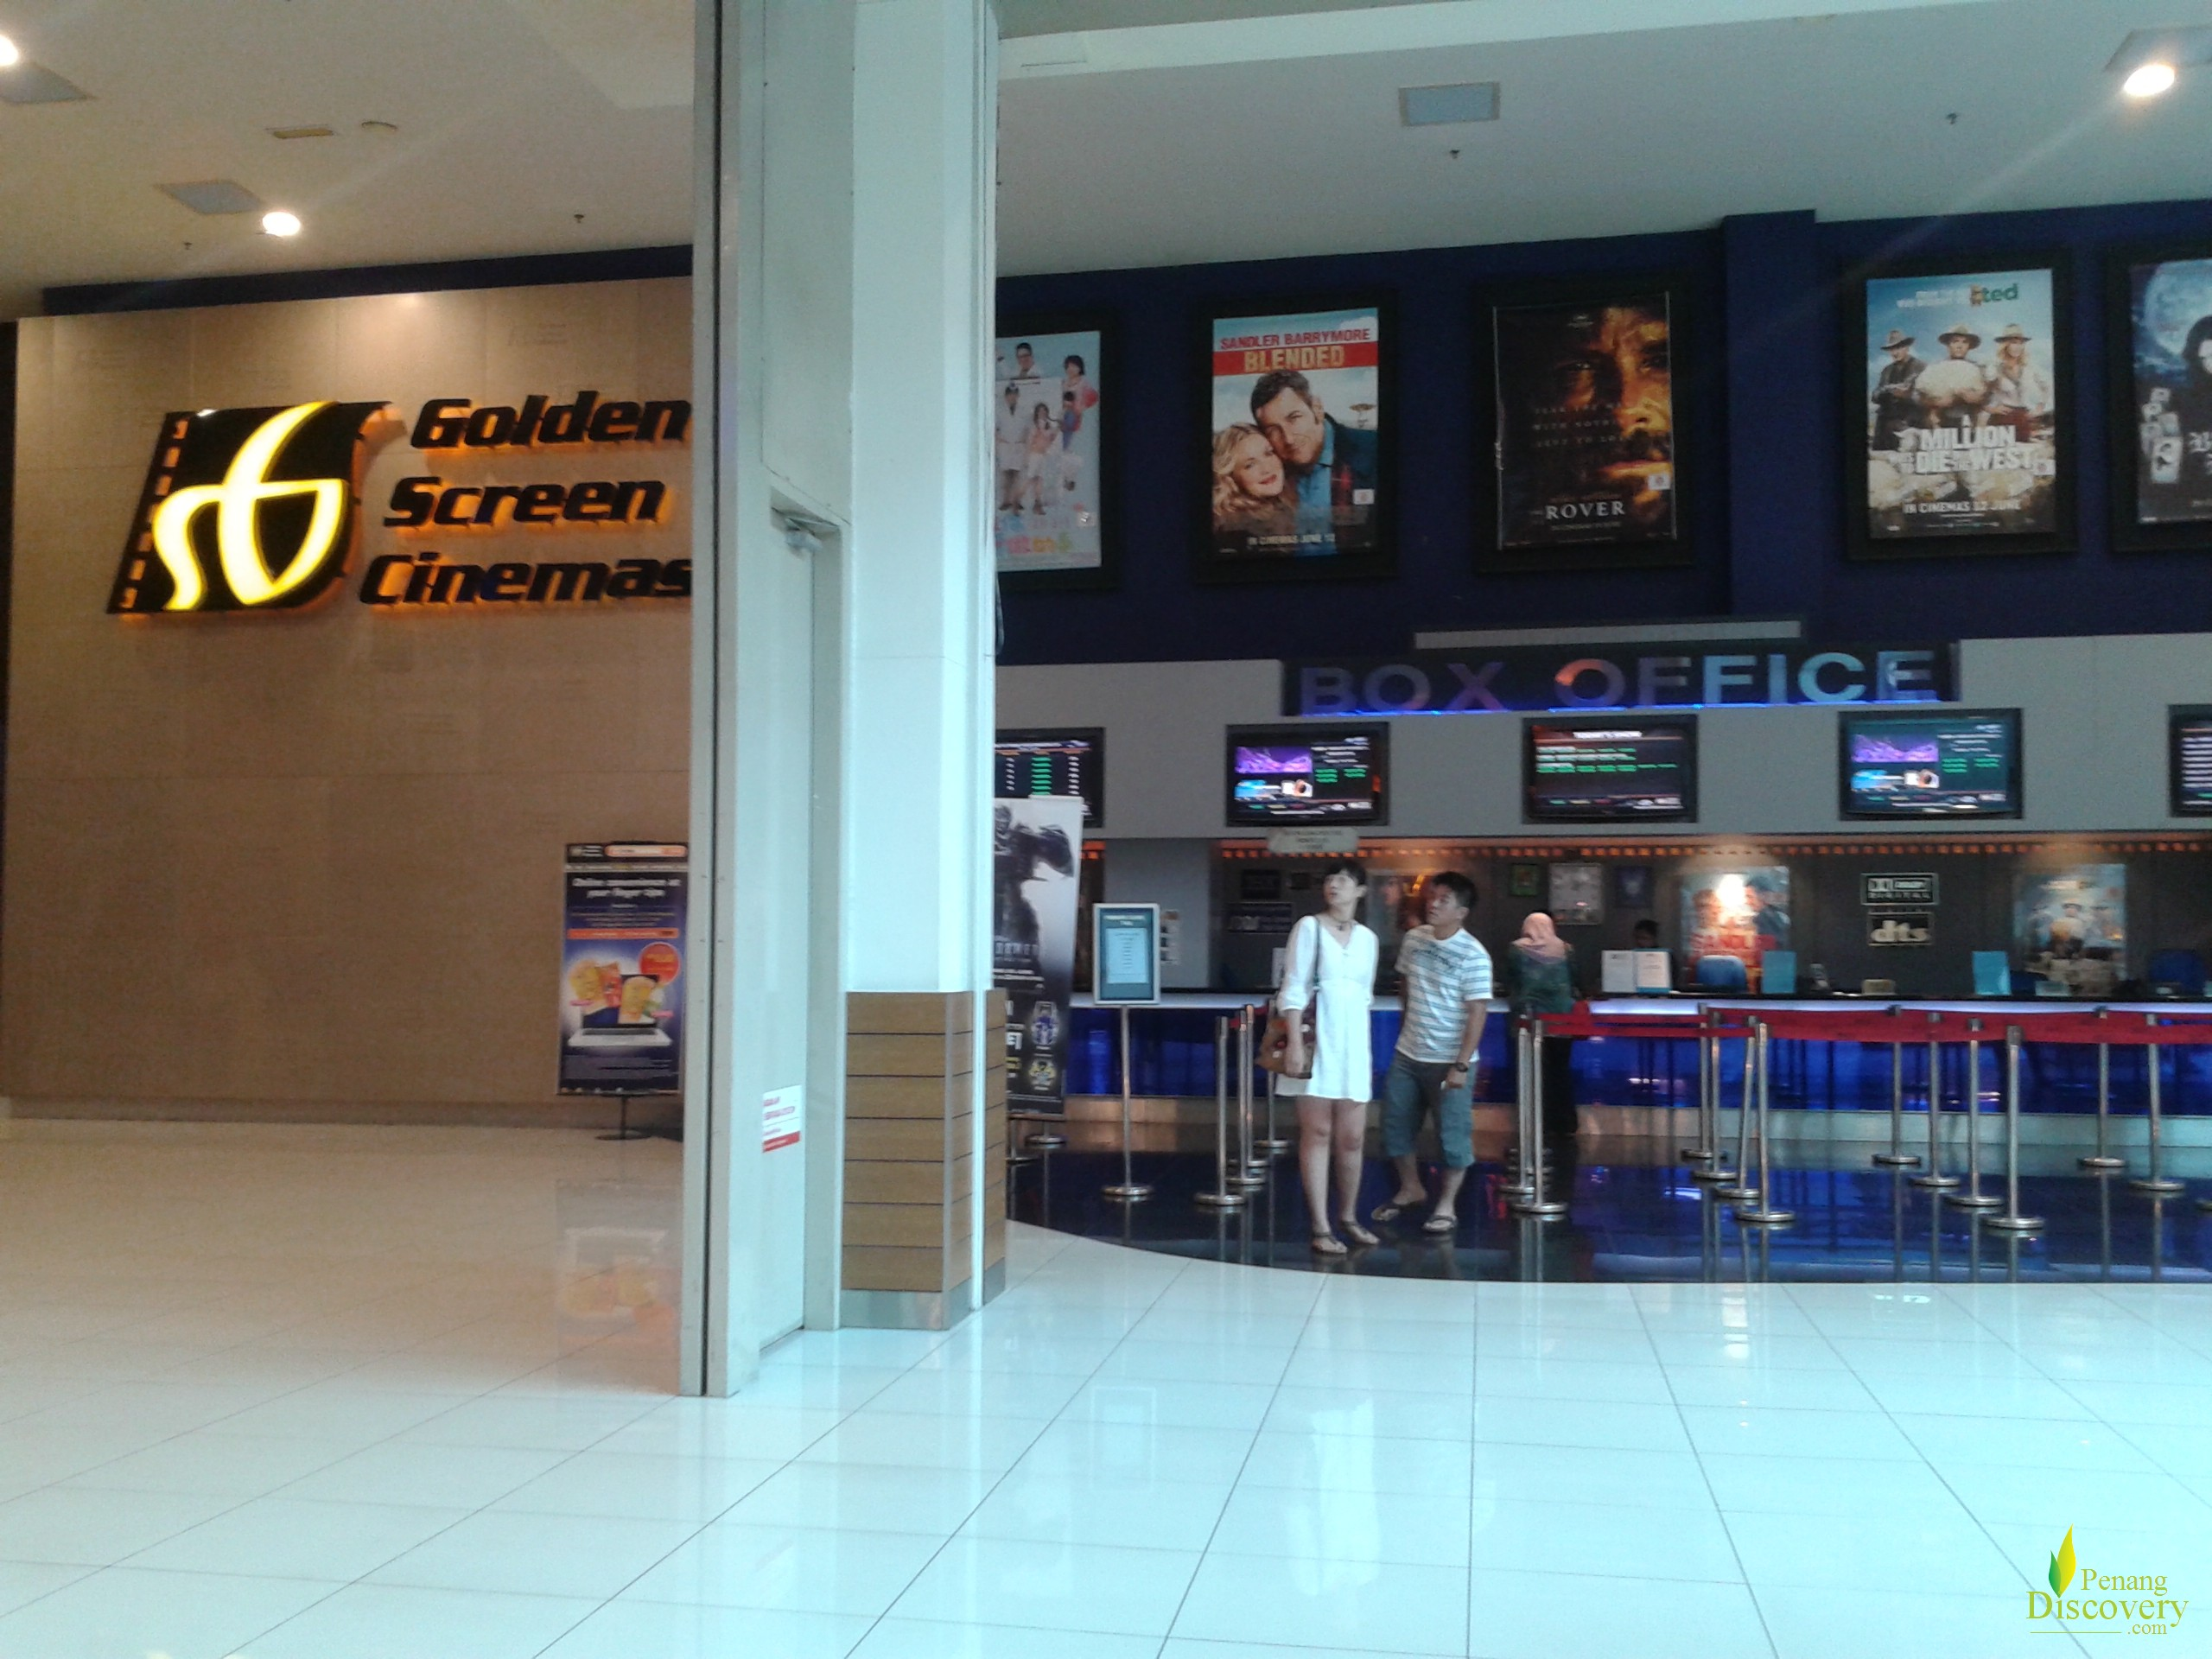 case study on golden screen cinemas gsc